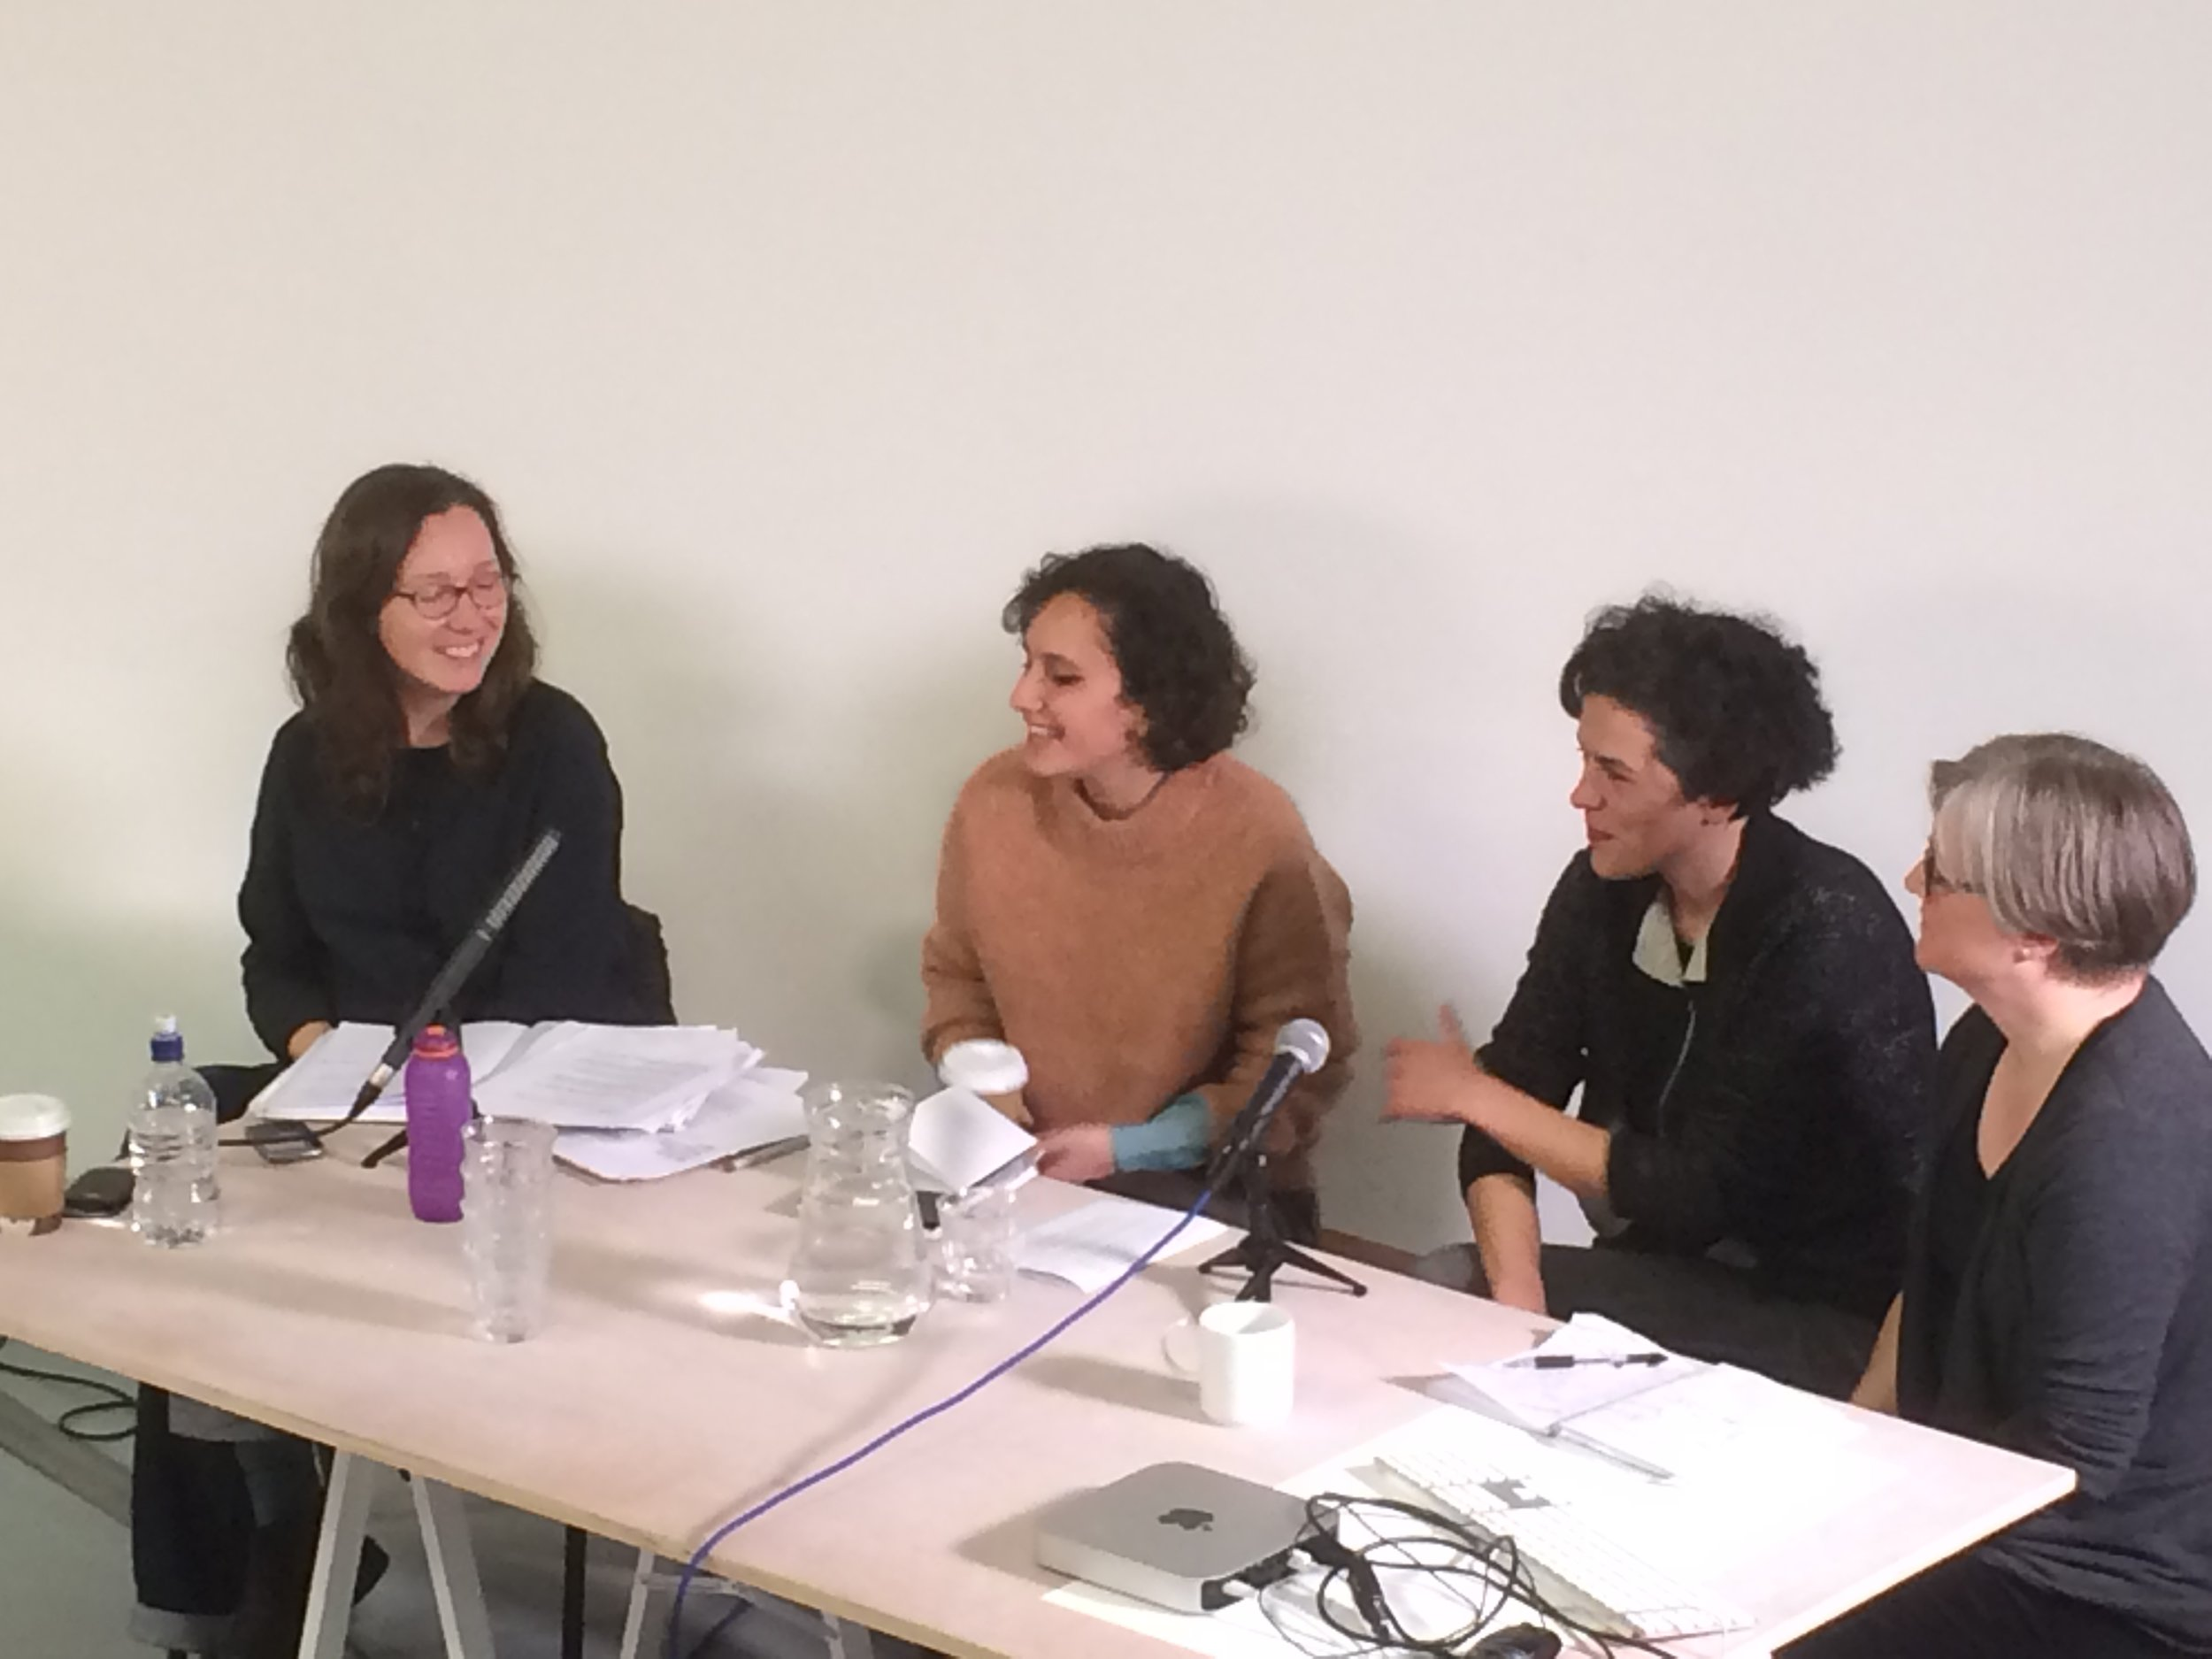 Catherine Grant, Andrea Francke, Carla Cruz, Caroline Russell, In or Out? panel, The Showroom, London, as part of Now You Can Go. Photo Helena Reckitt